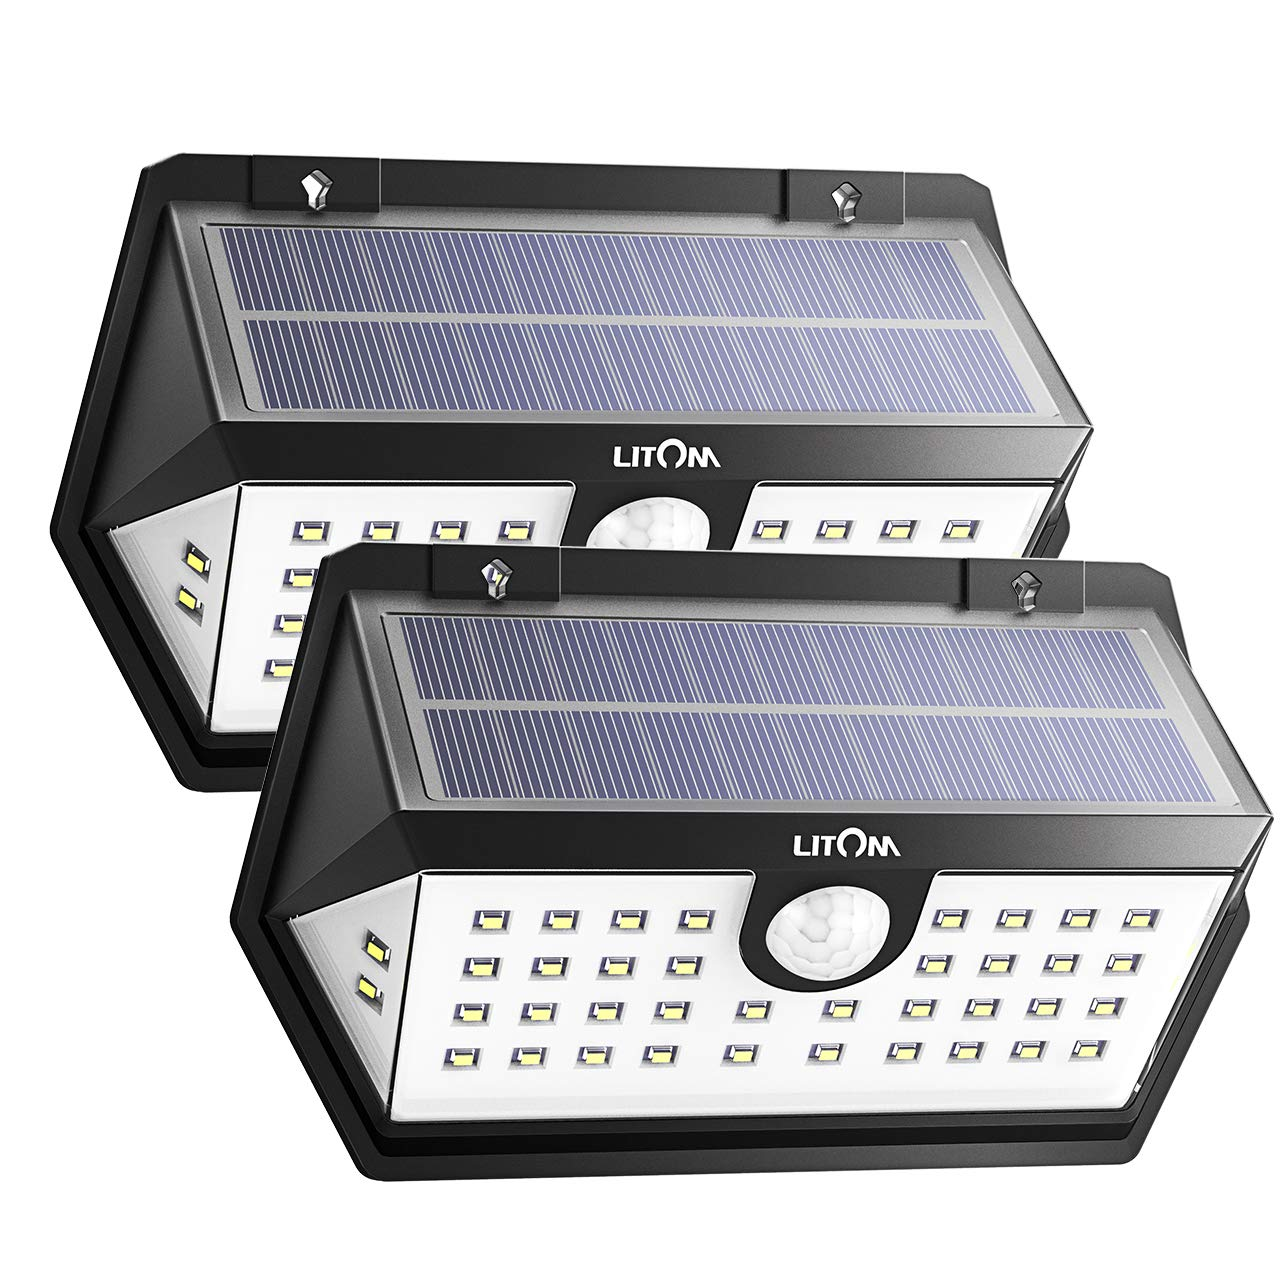 LITOM Solar Lights Outdoor, 40 LED Wireless Wide Angle Motion Sensor Light, IP65 Waterproof Security Solar Light, Three Working Modes for Front Door, Yard, Garage, Deck, Porch, Shed, Walkway (2 Pack)